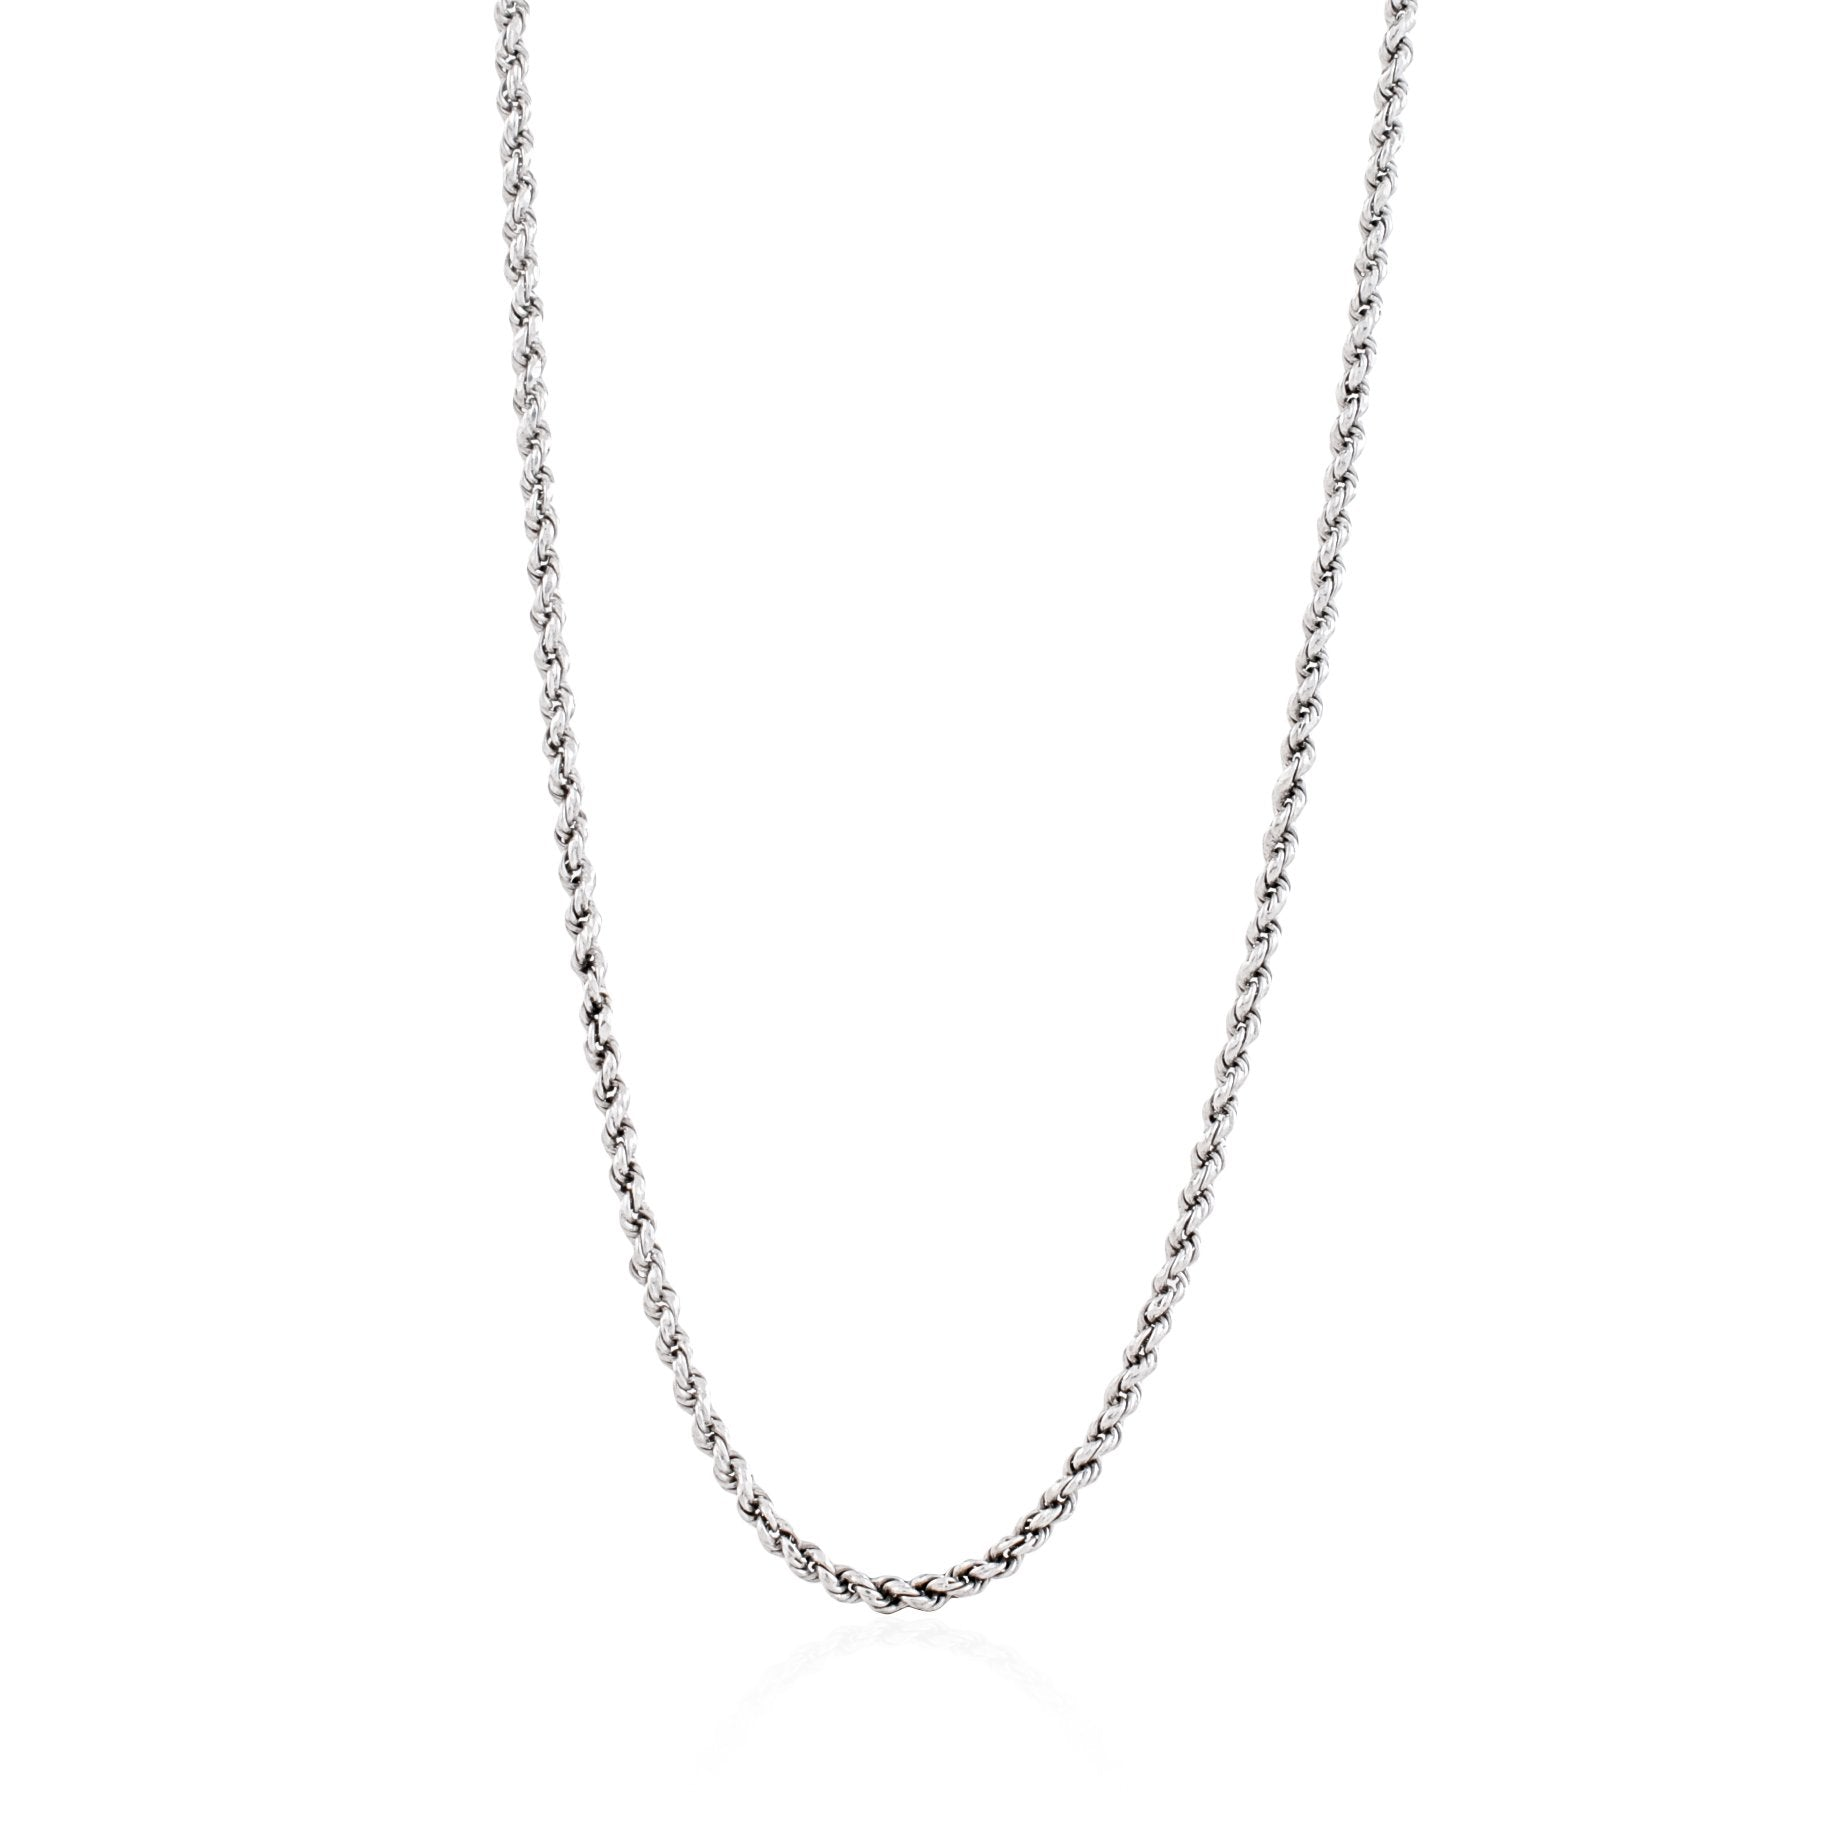 Rhode Island Twisted Rope Chain - Silver